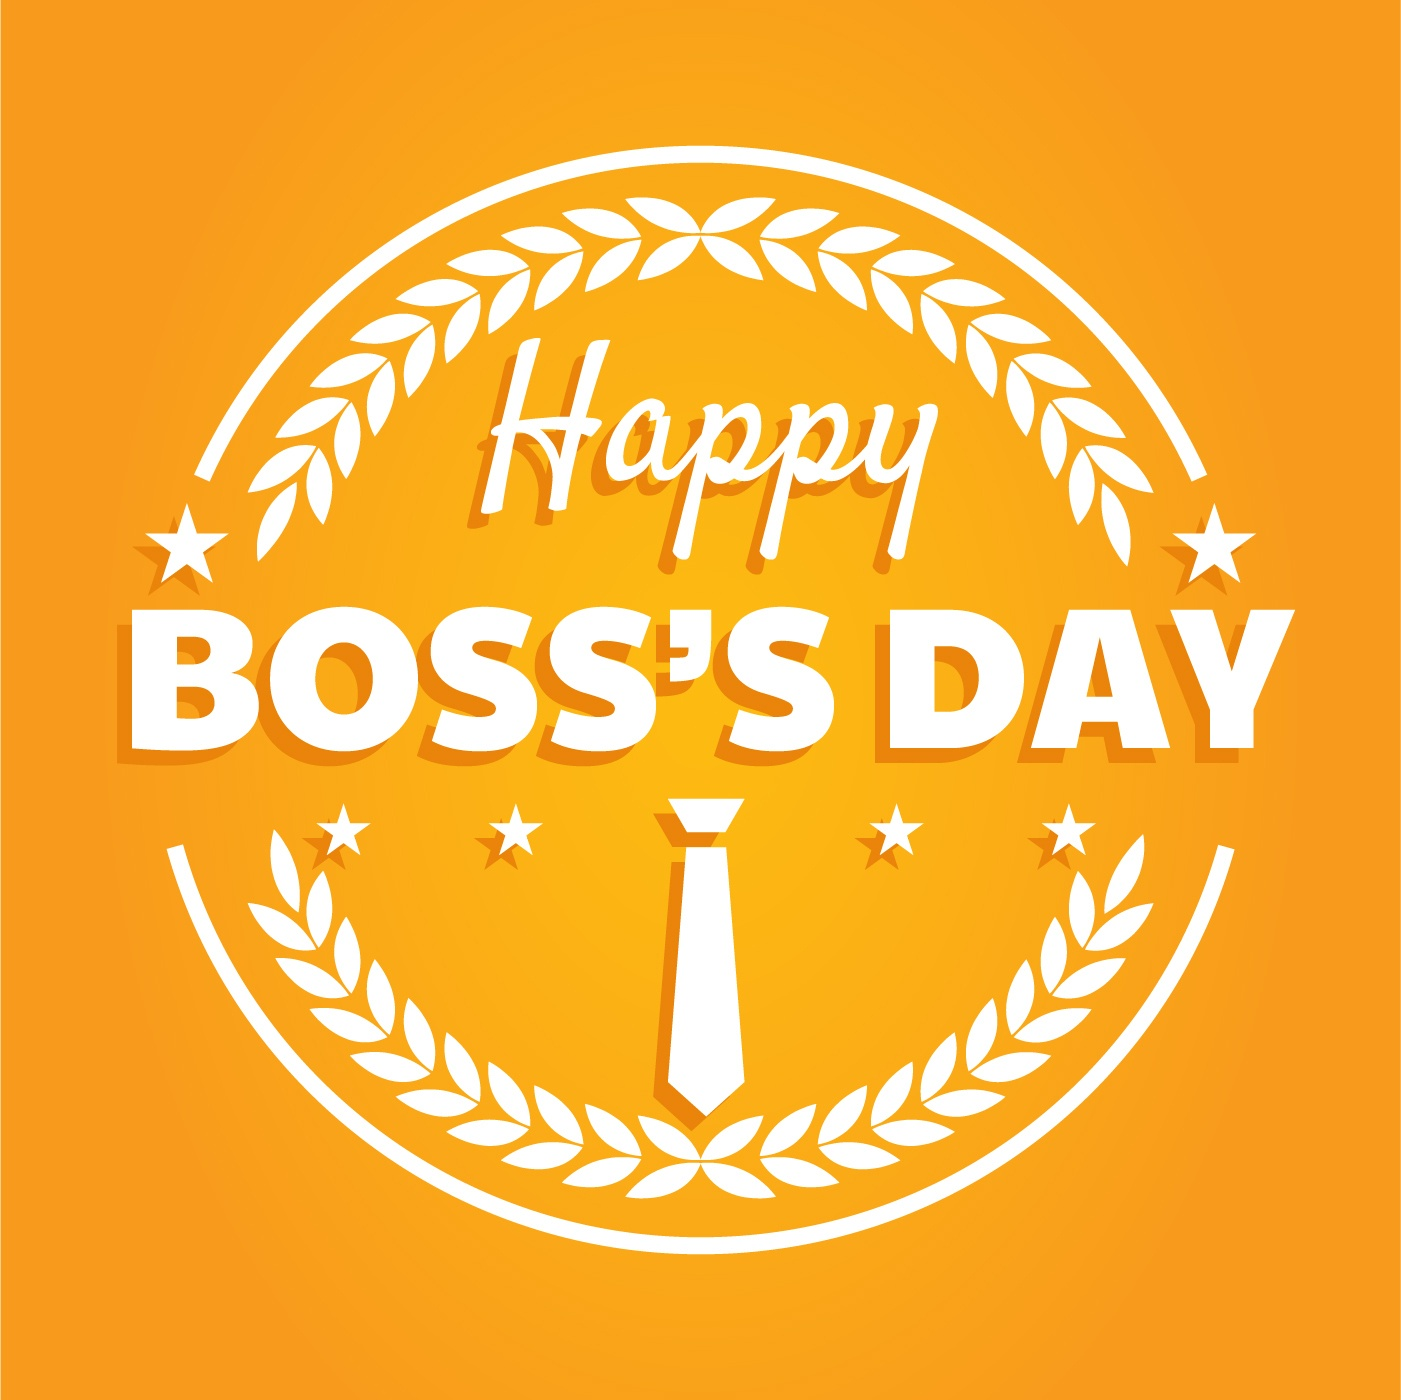 Happy Boss Day Wishes Greeting Cards, Free Ecards & Gift Cards - Happy Boss Day Cards Free Printable